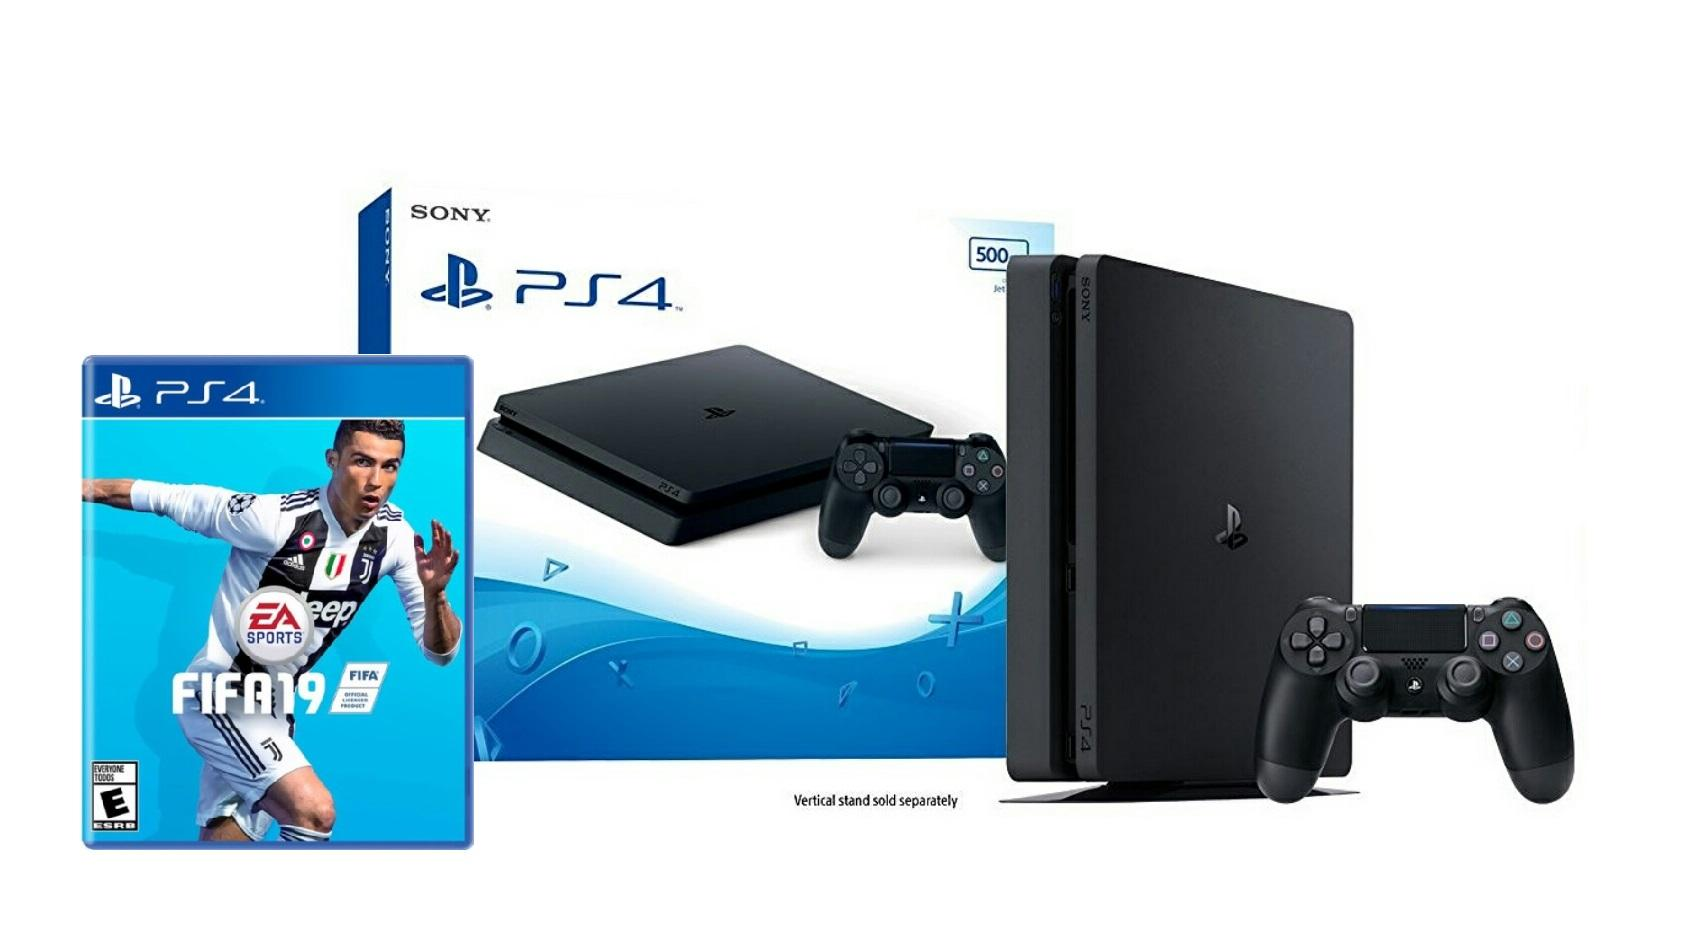 Latest Sony Playstation Consoles Products Enjoy Huge Discounts 4 Ps4 500gb Black New Slim Console Fifa 19